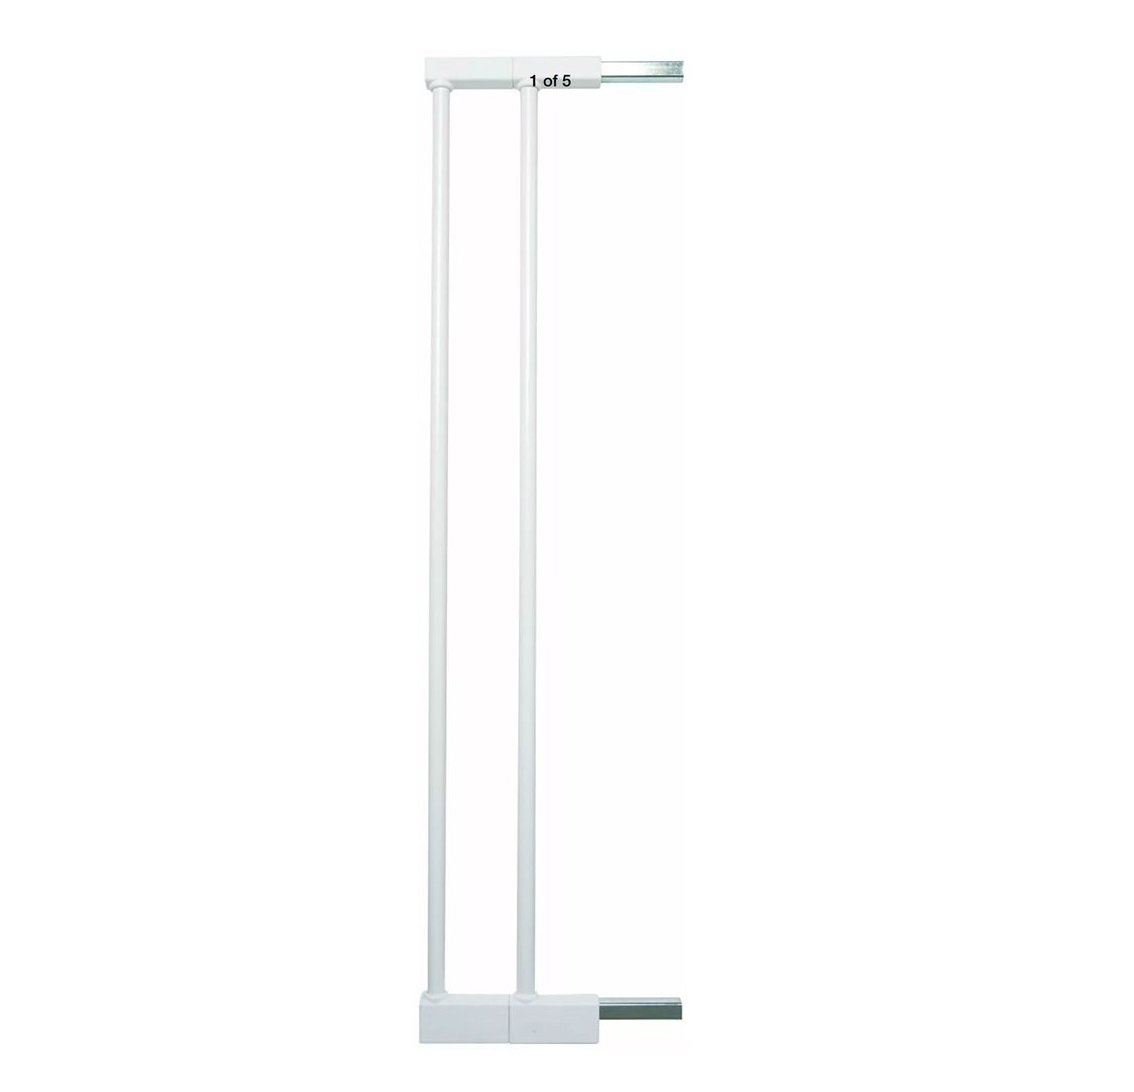 Baby Dan Extend A Gate 58014-5400-10-85 2 Extensions for Premier, Pressure Fit, Danamic and Two Way Autoclose Safety Gates 2 x 7 cm White 58014-2400-10-21